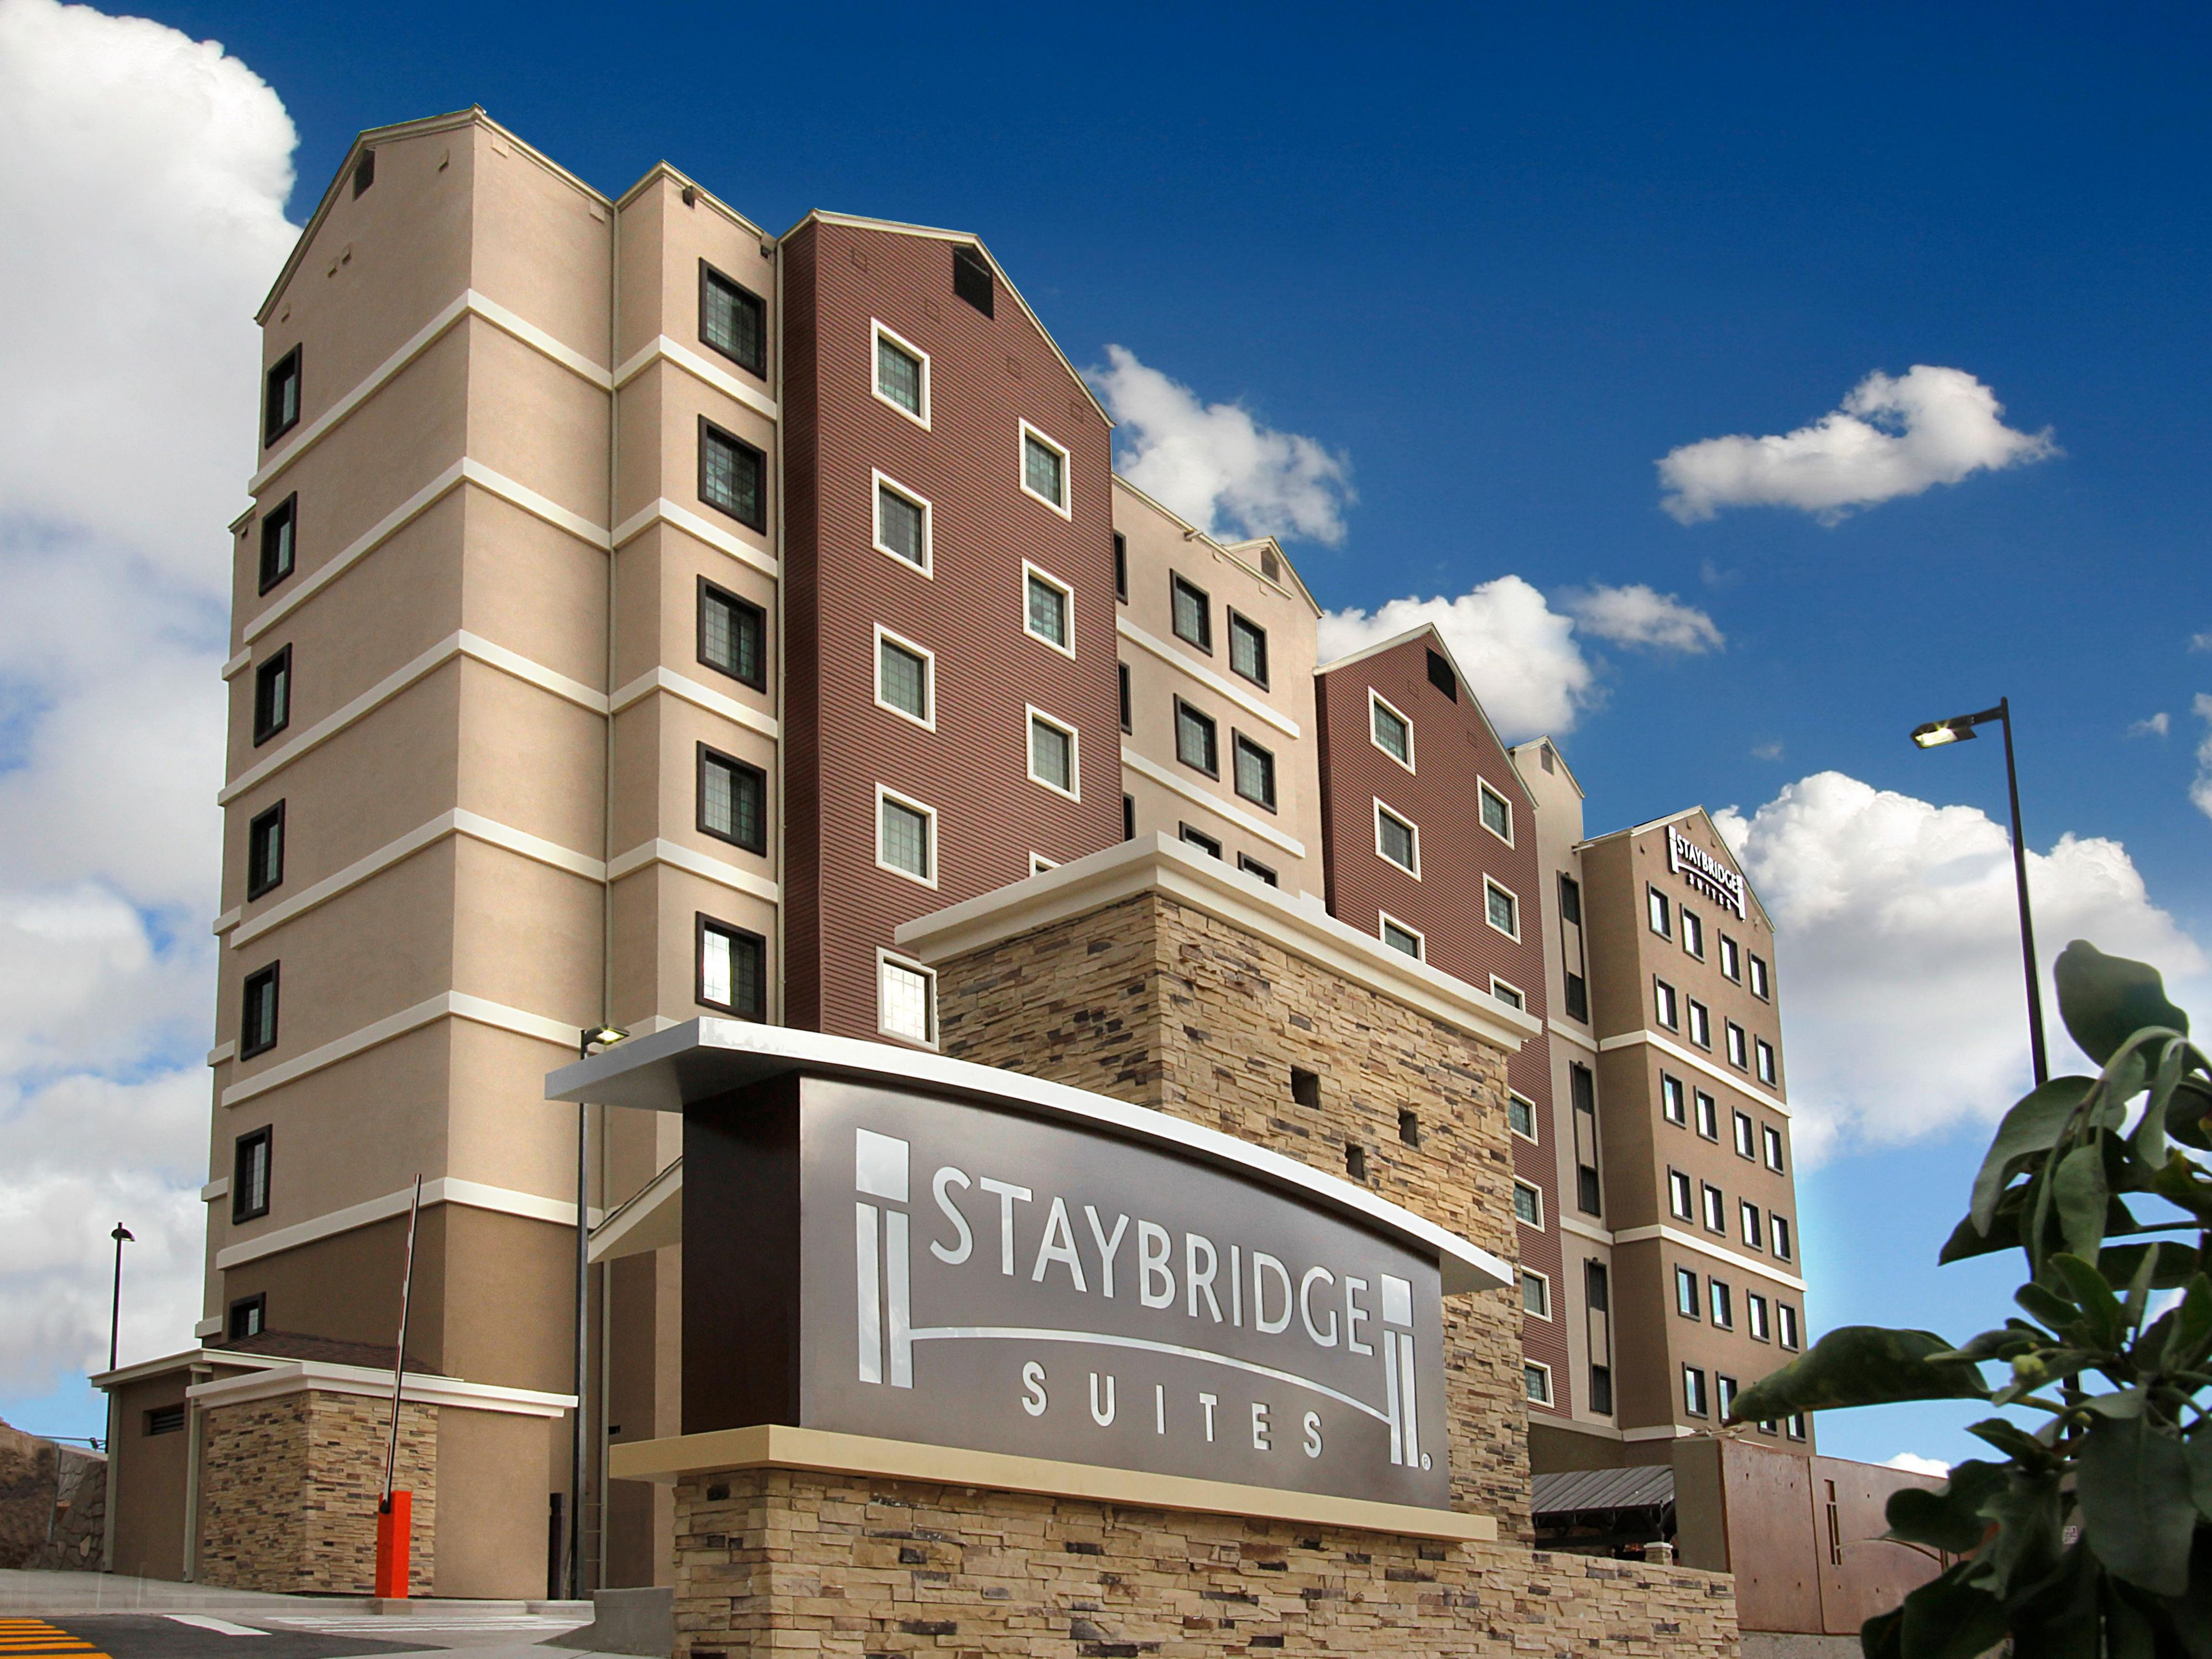 Staybridge Suites Chihuahua Extended Stay Hotel In